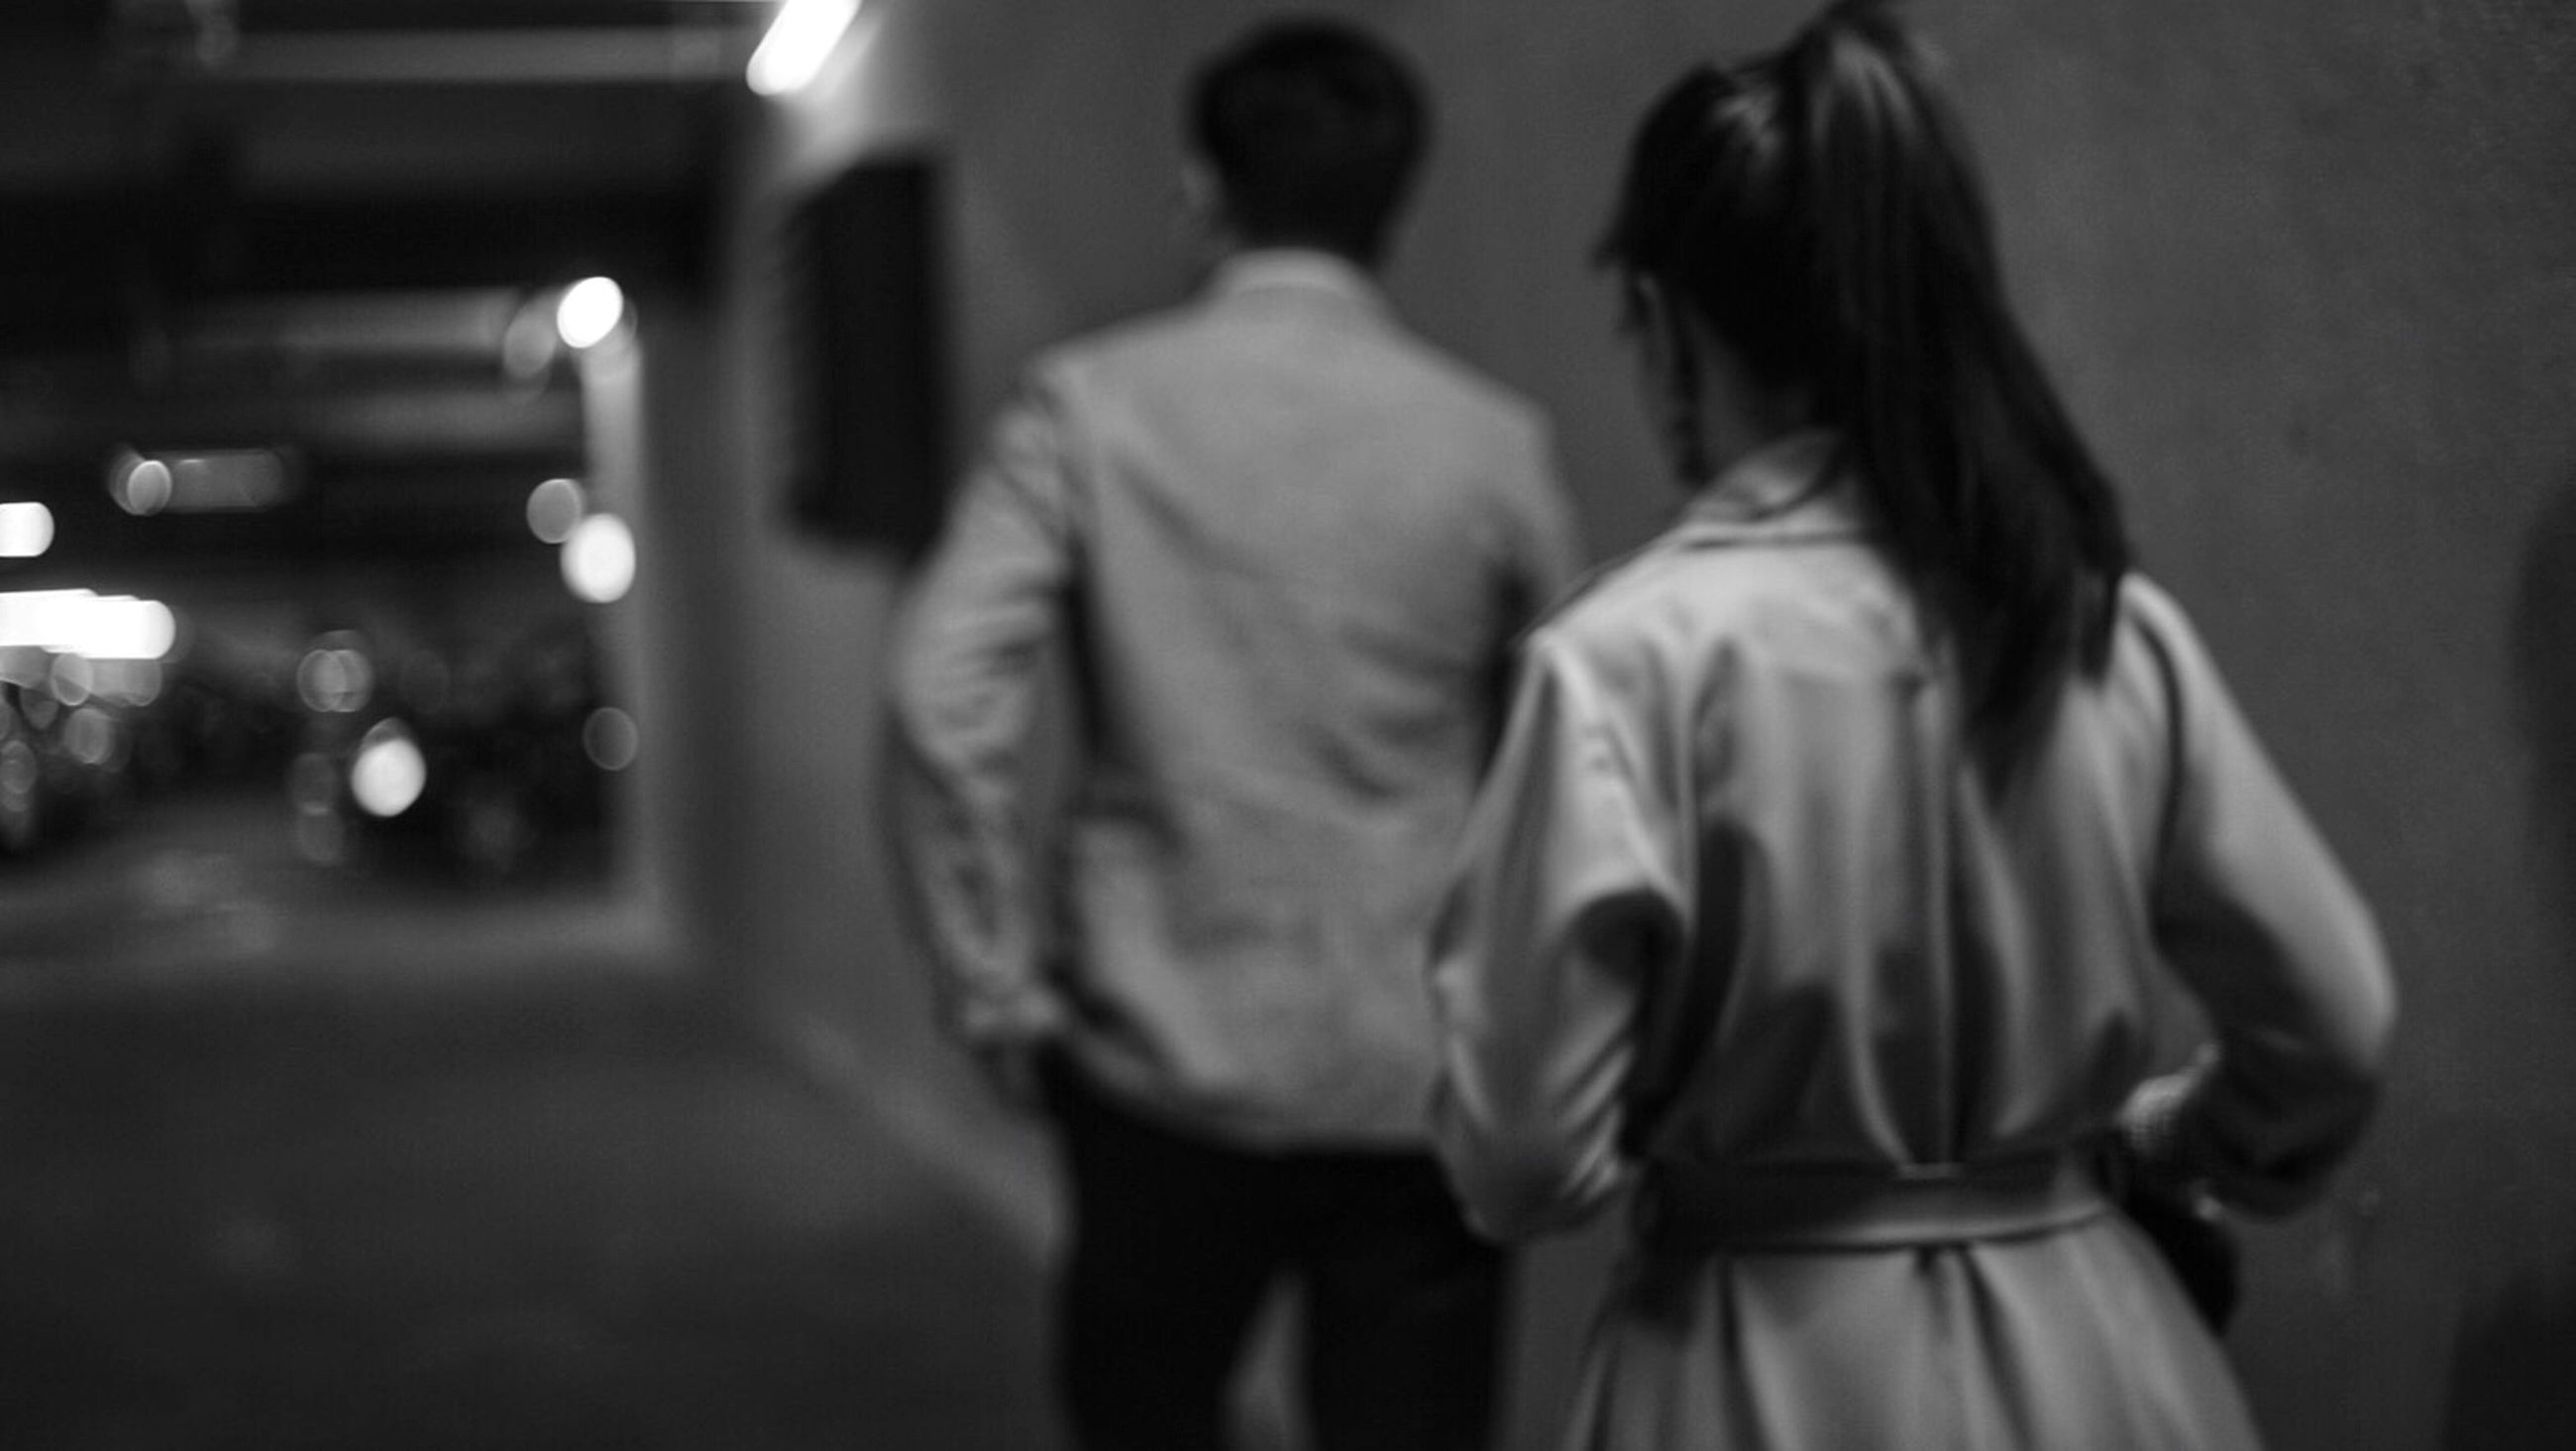 lifestyles, rear view, night, leisure activity, men, focus on foreground, illuminated, casual clothing, indoors, standing, person, street, full length, selective focus, walking, incidental people, holding